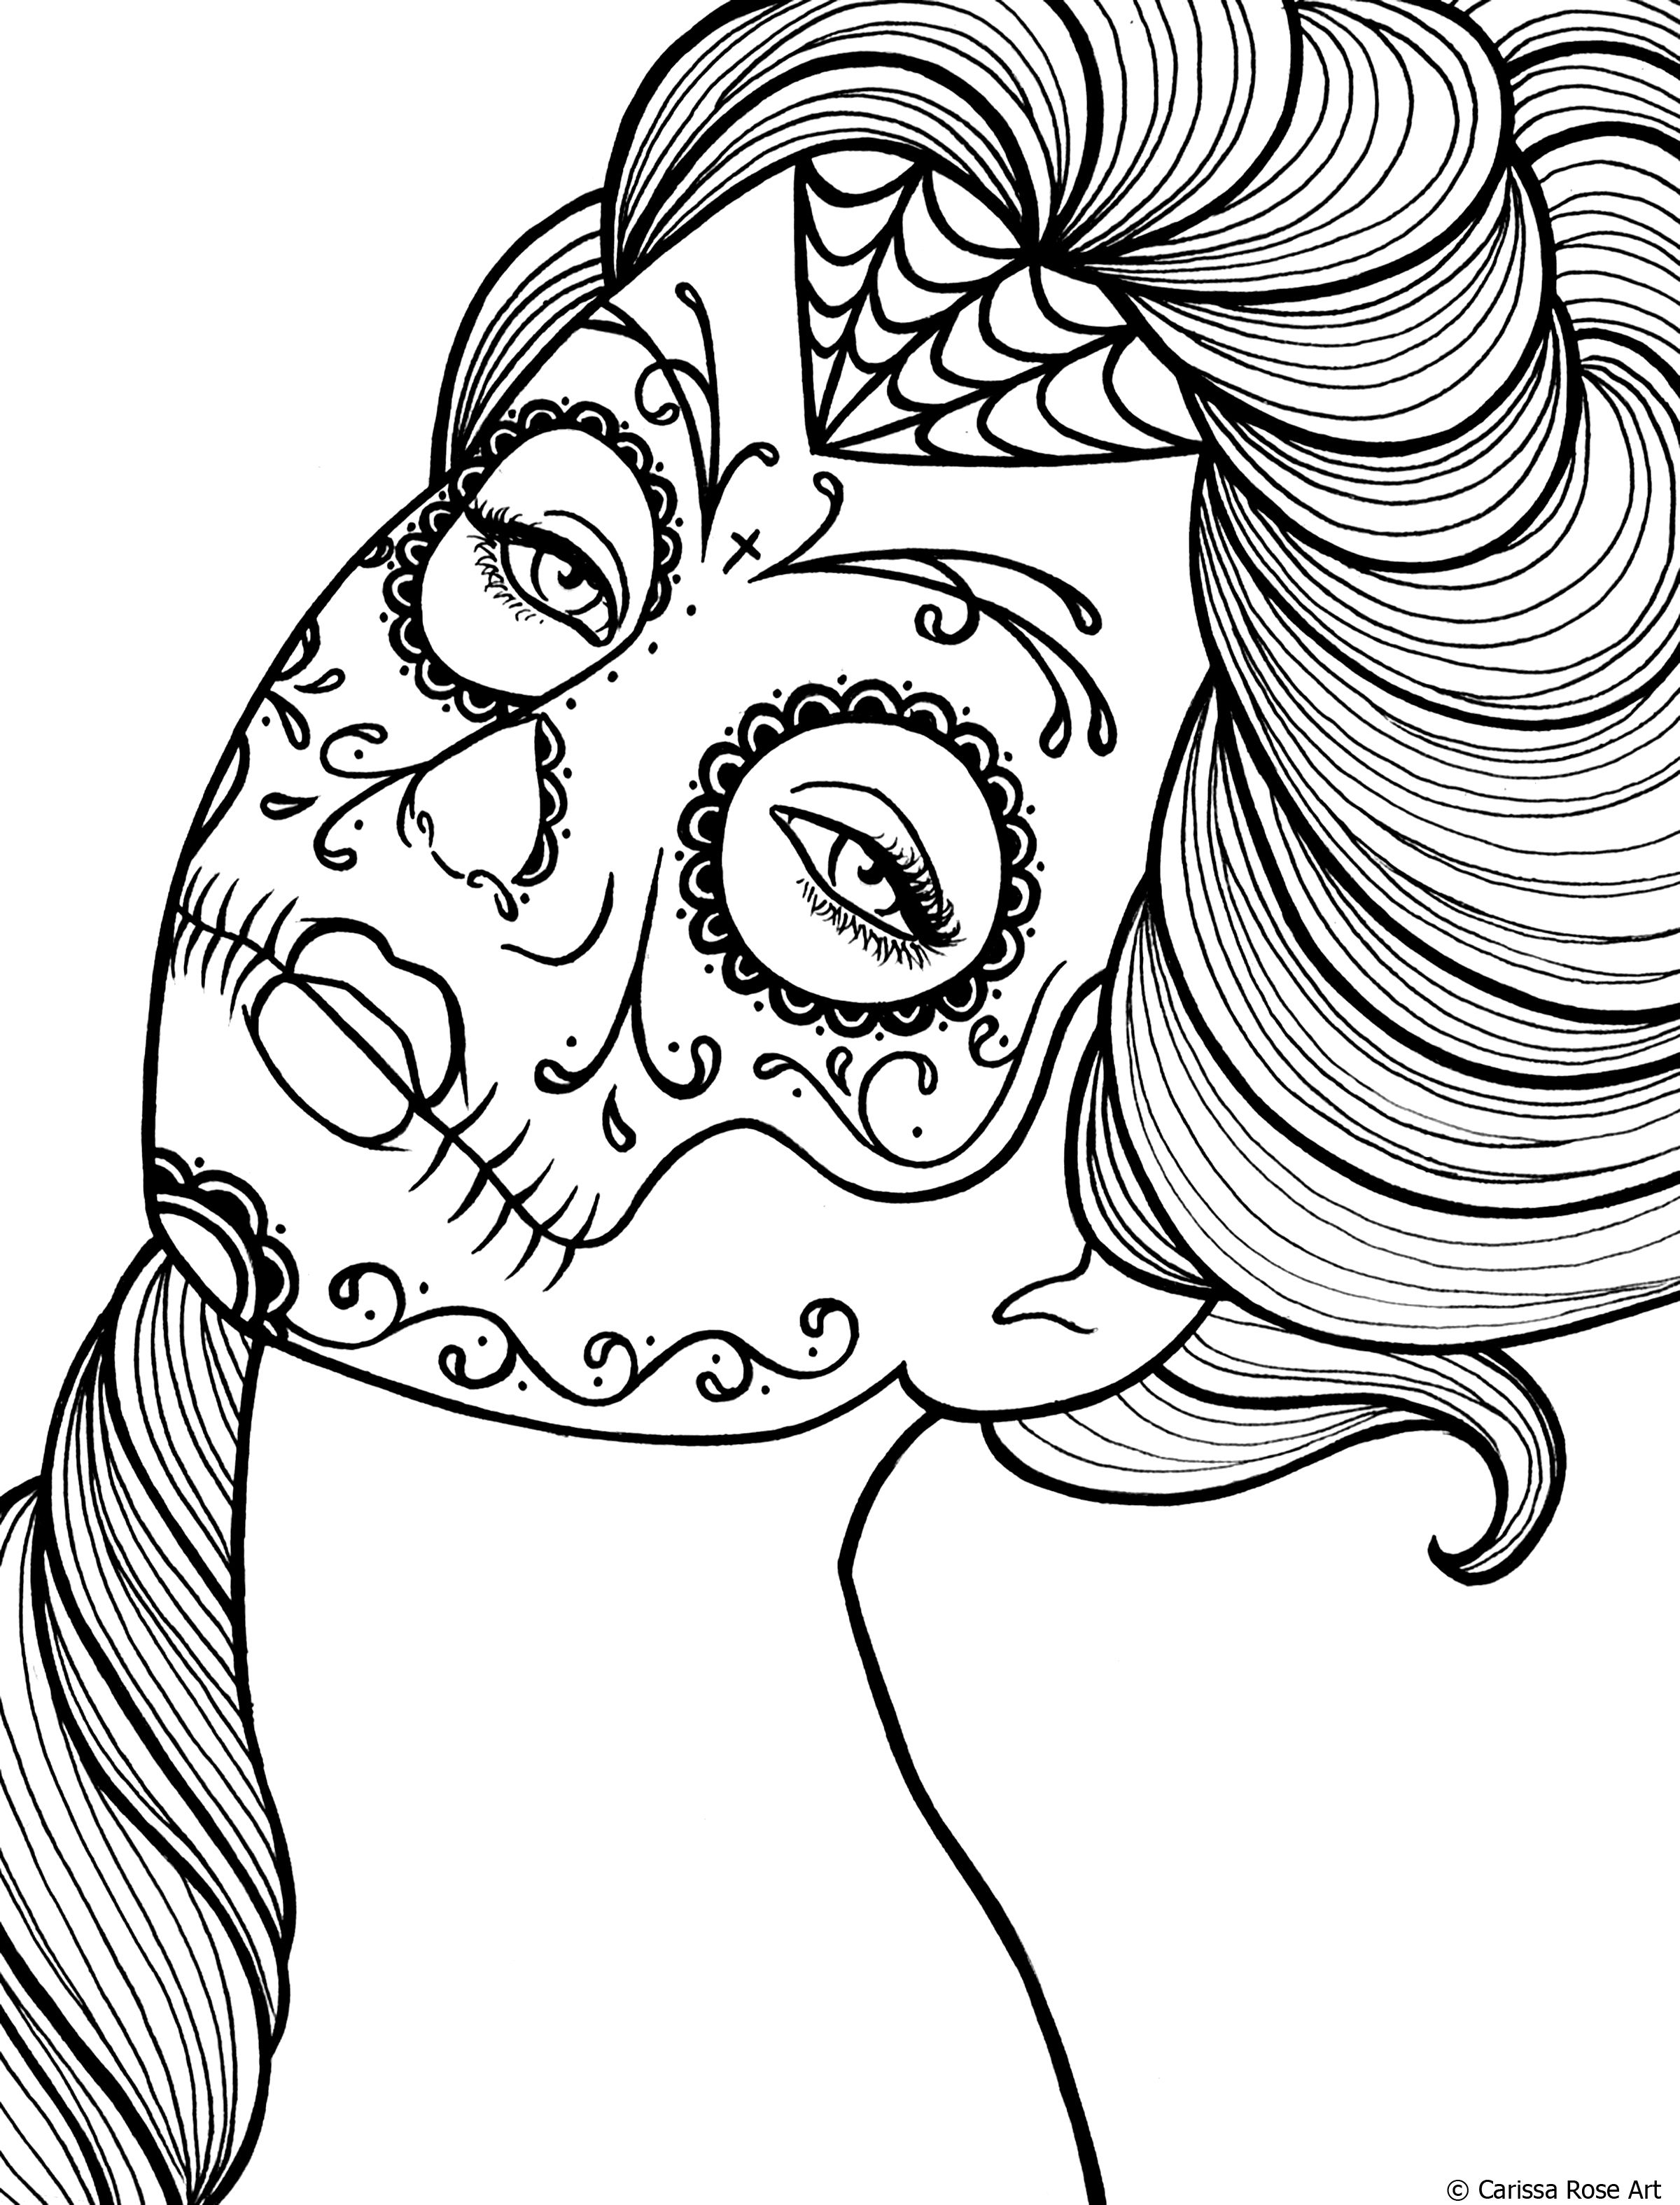 Coloring Pages : Free Printable Day Of The Coloring Book Page - Free Printable Day Of The Dead Coloring Pages